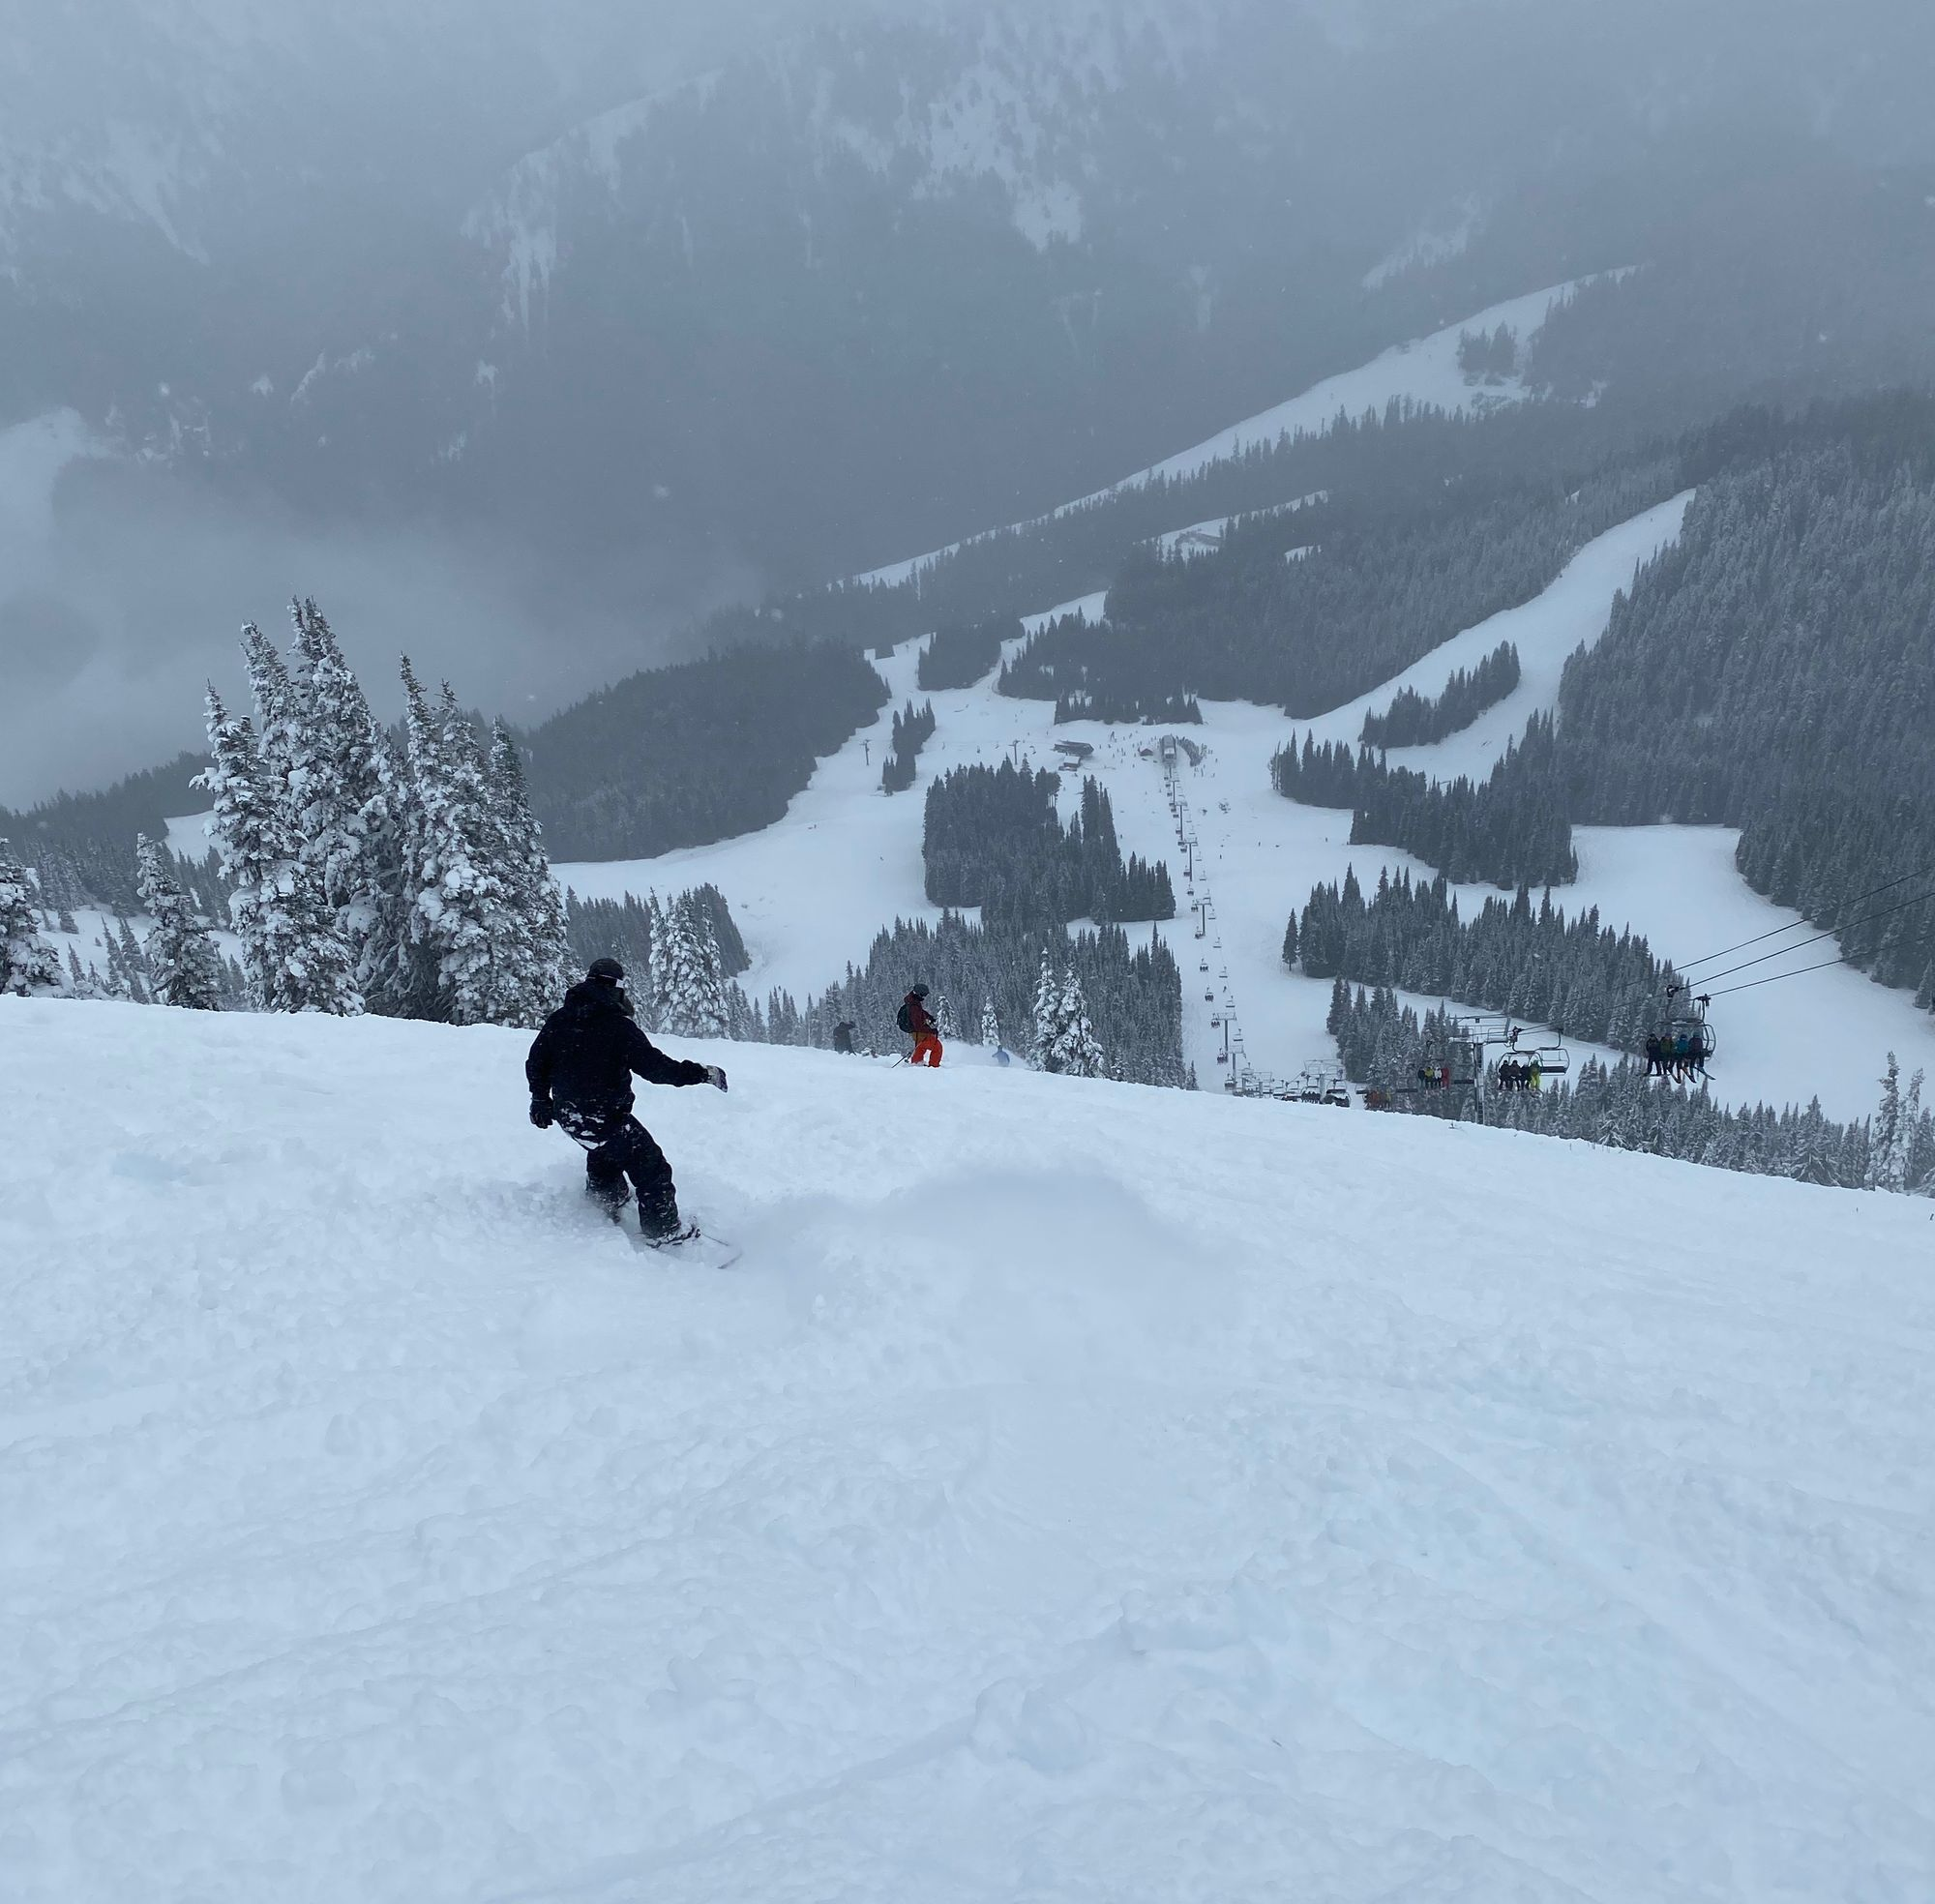 Trip Report: Crystal Mountain